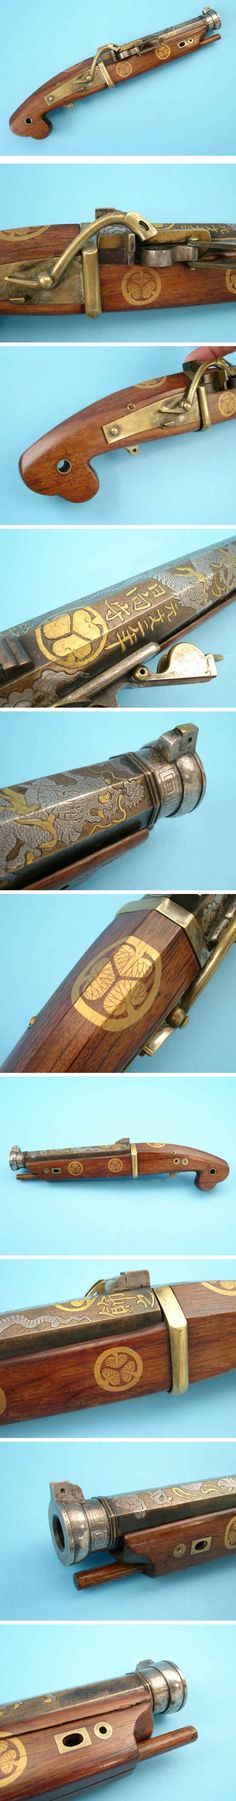 Japanese matchlock pistol, dated 1732, tapering octagonal bronze barrel decorated with damascened dragon in clouds over its full length, muzzle damacened in silver, standing sights damascened in gold and silver, fitted with damacened bronze pan, fence and pan cover, plain bronze lock with figured wooden full stock decorated with five gilt-lacquered Tokugawa mon, small plain bronze mounts and trigger and original wooden ramrod, with Tokugawa mon and three brief inscriptions, 13 5/8 in.